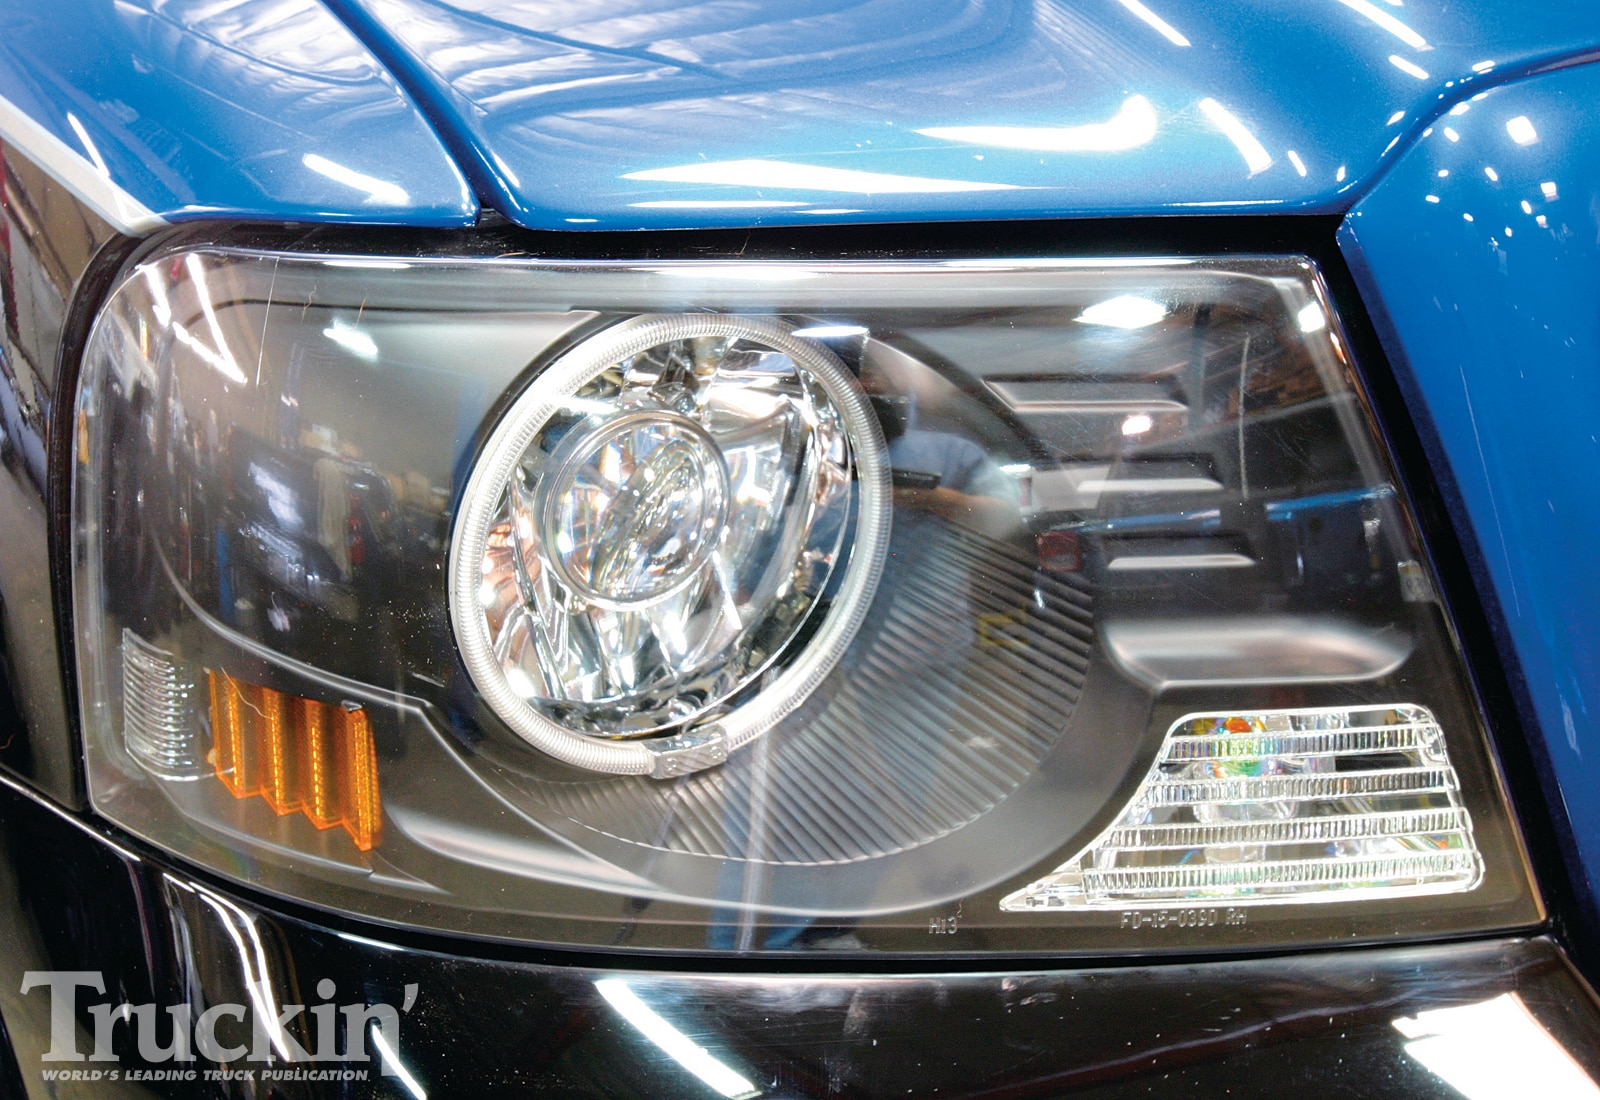 2007 Ford F150 Upgrades Euro Headlights And Tail Lights Truckin